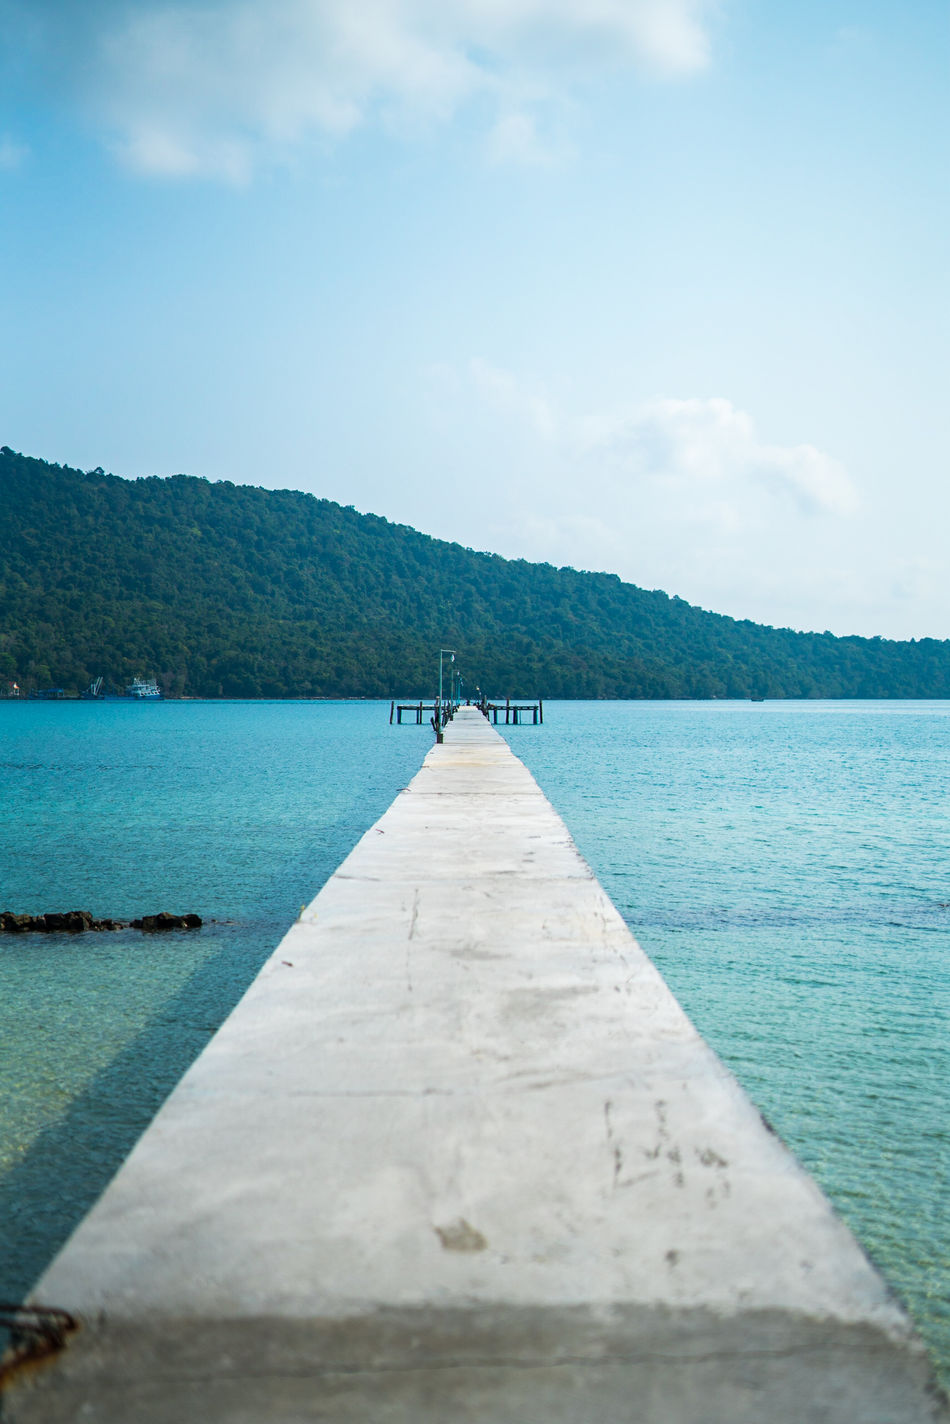 Gotta leave at some point Water Sea No People Nature Blue Scenics Beach Landscape Sky Outdoors Day Beauty In Nature Tree Pier Nautical ASIA Tropical Showcase: April Vacations Cambodia Travel Photography Full Length Front View Nature Horizon Over Water